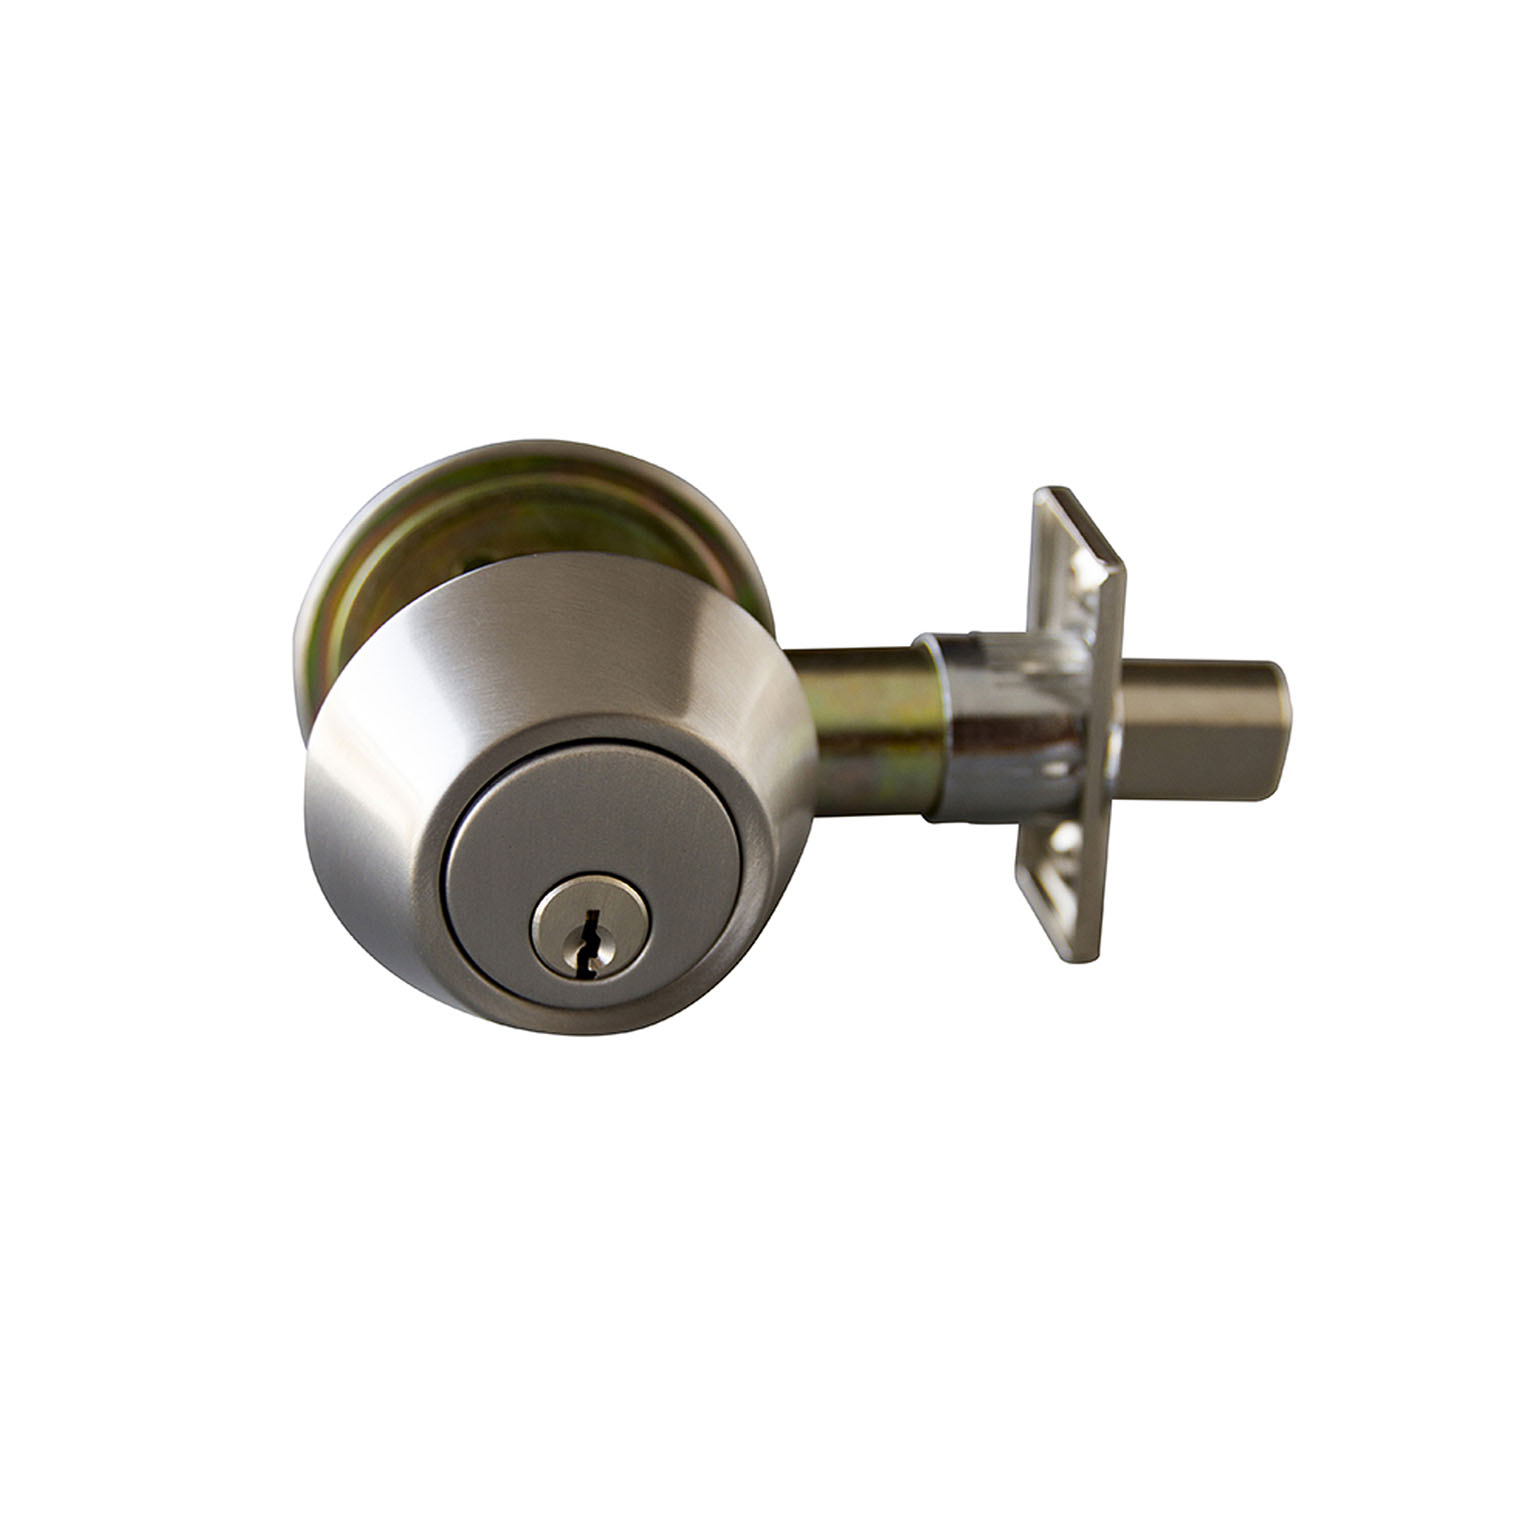 Design House Double Cylinder Deadbolt, Satin Nickel - 727495